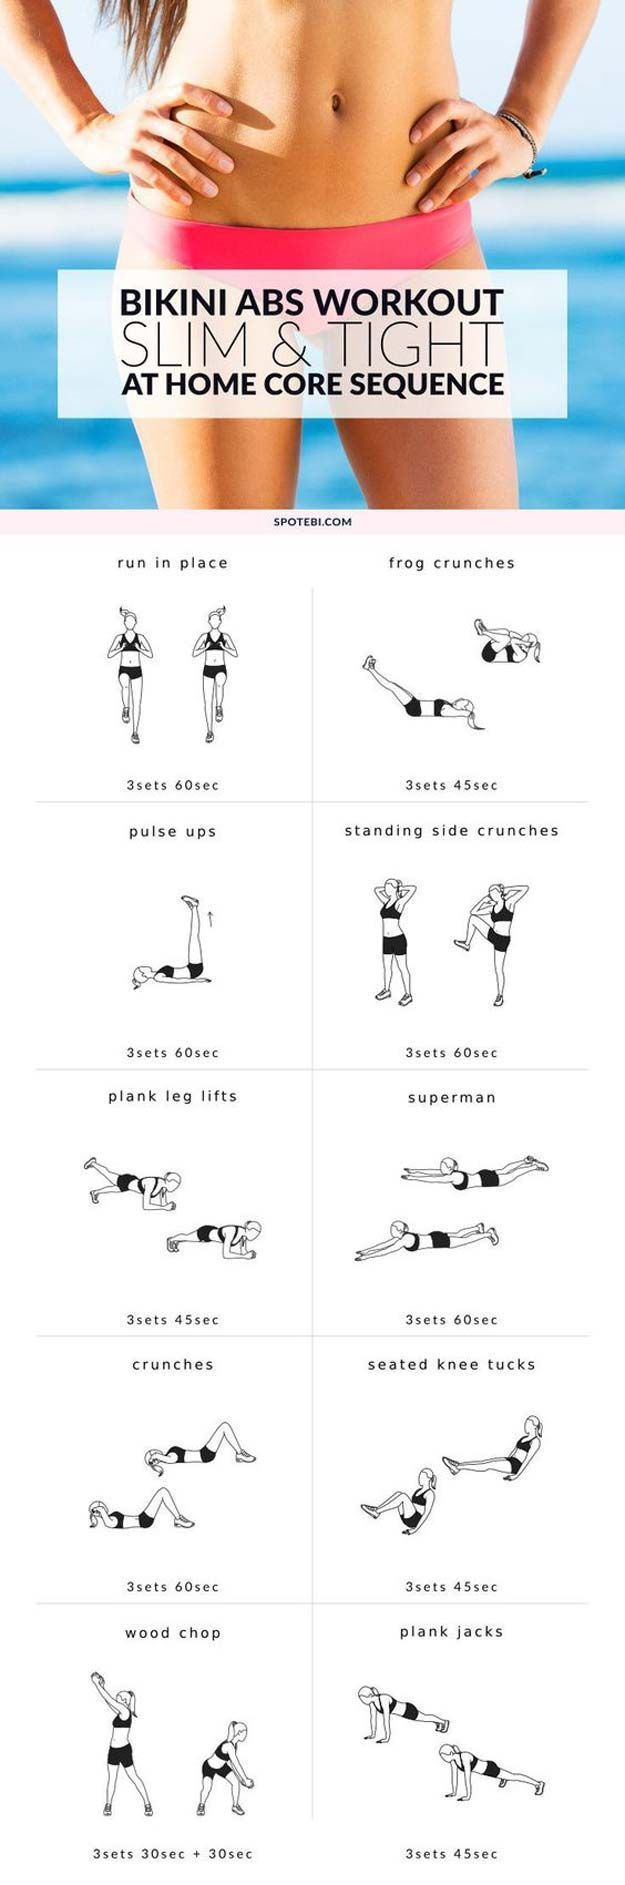 Best Workouts for a Tight Tummy - At Home Bikini Abs Workout - Ab Exercises and Ab Routine Ideas for Upper and Lower Abs - Get rid of that Belly Pooch, Love Handles or Muffin Top - Workouts and Motivation to Get In Shape, You don't Even Need a Gym - Weigh